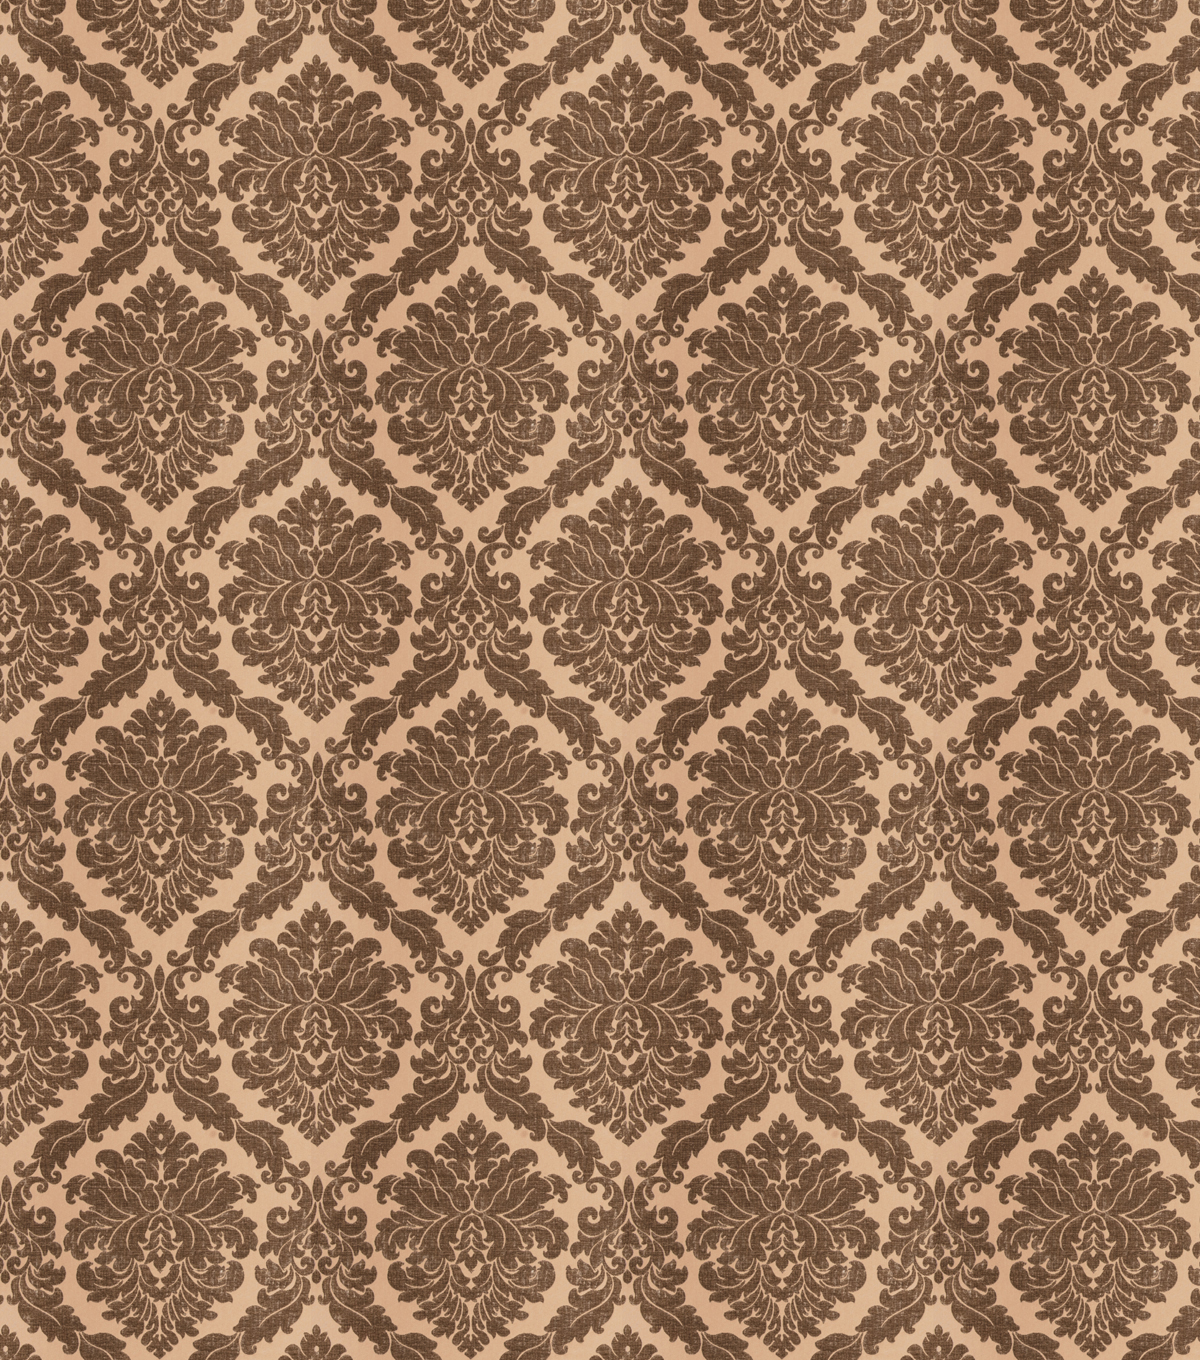 Eaton Square Lightweight Decor Fabric 54\u0022-Migrate/Taupe